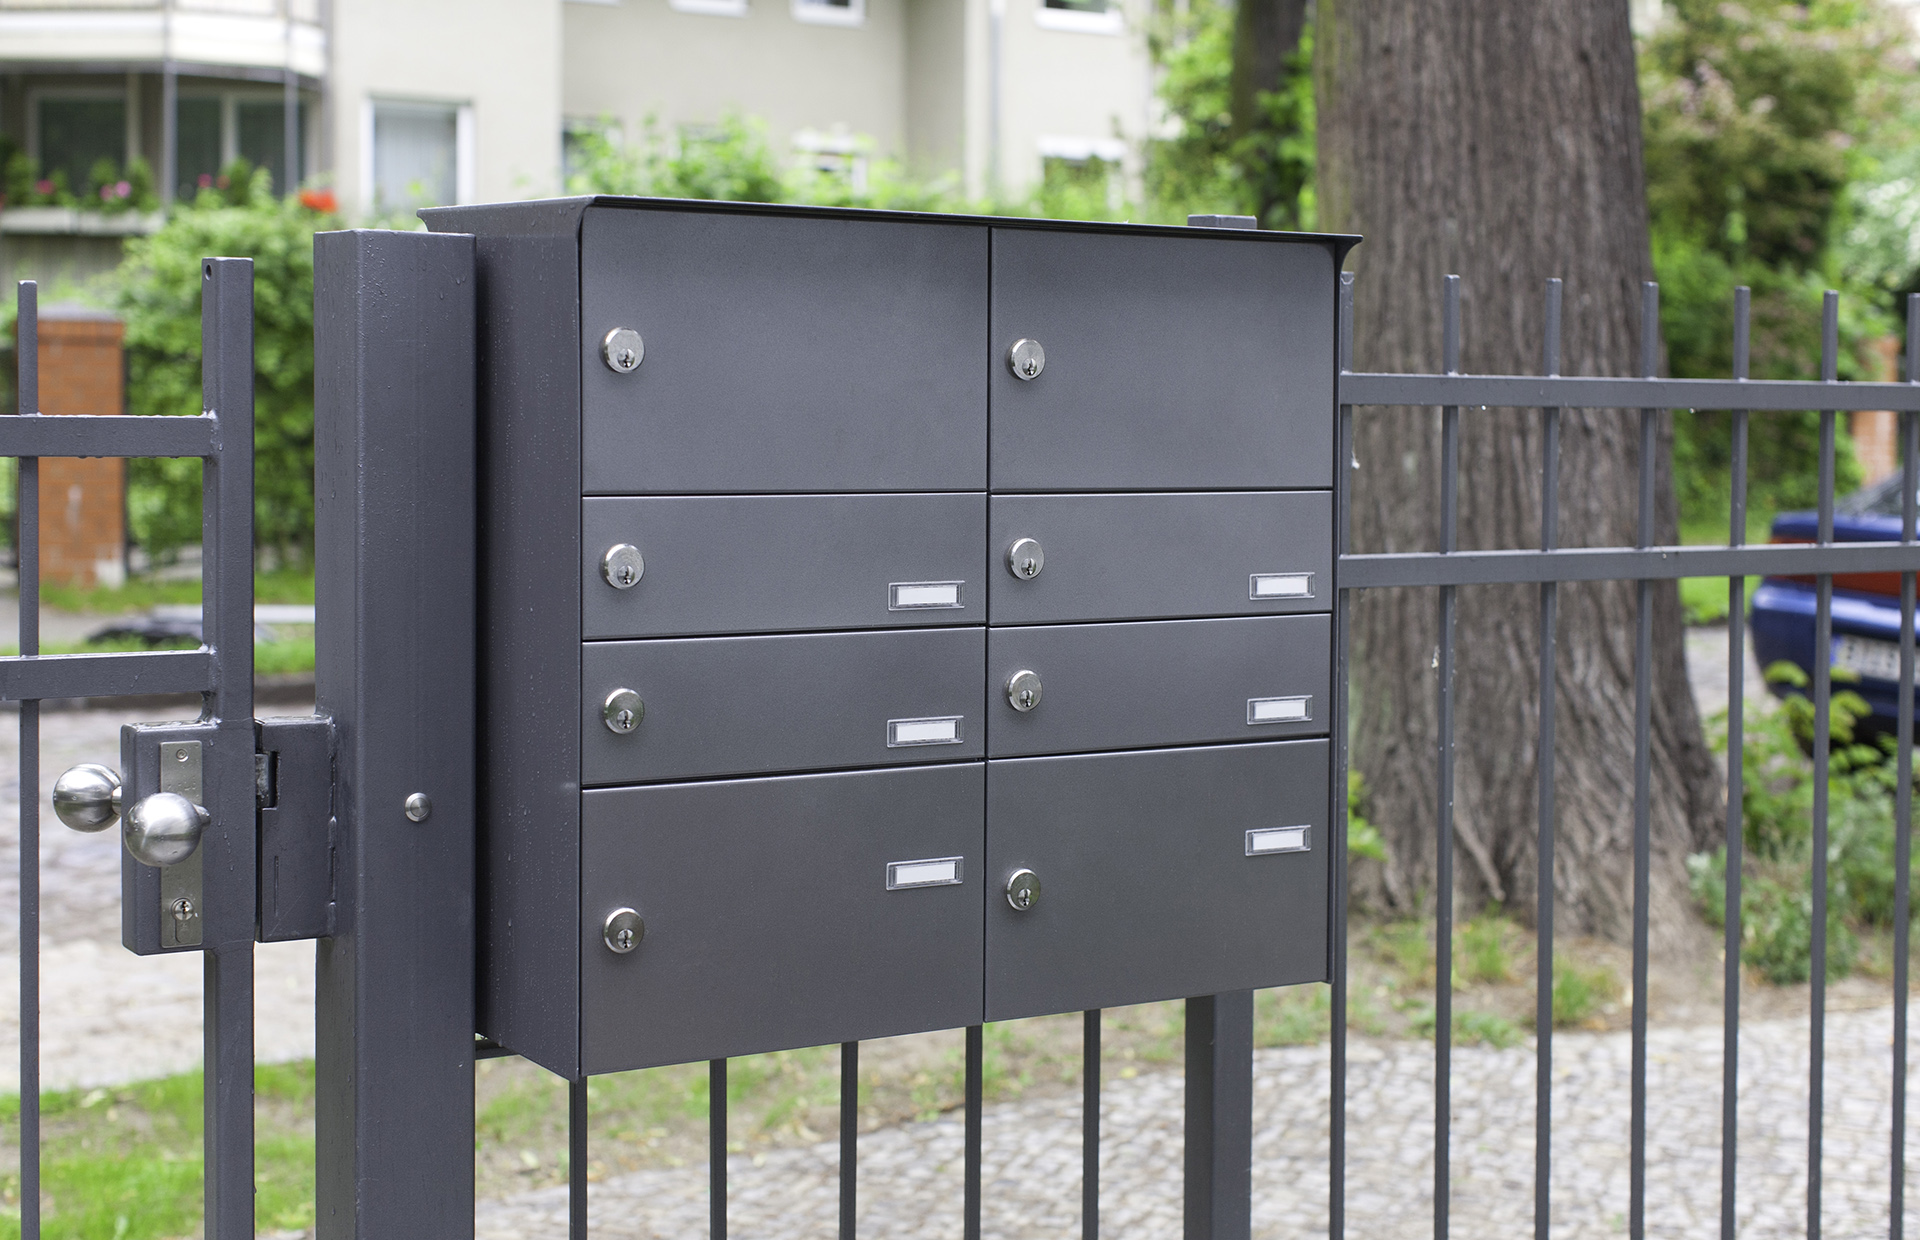 search fencemounted mailbox banks  max knobloch nachf gmbh